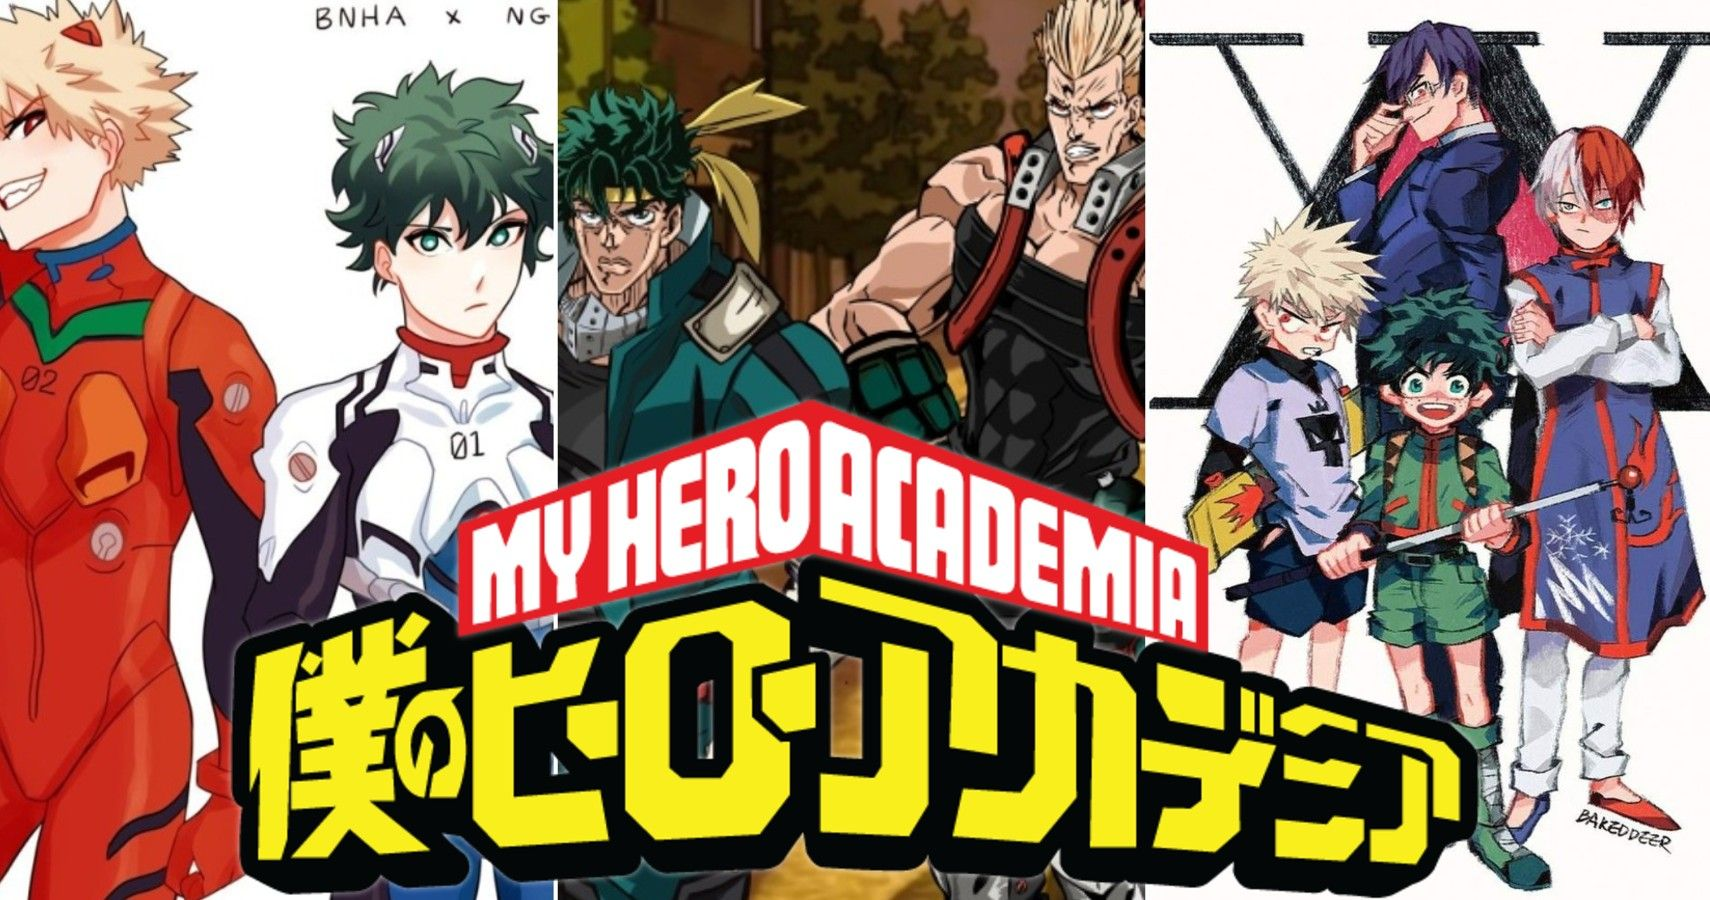 My Hero Academia 10 Awesome Fan Art Of Characters Drawn In Different Anime Styles